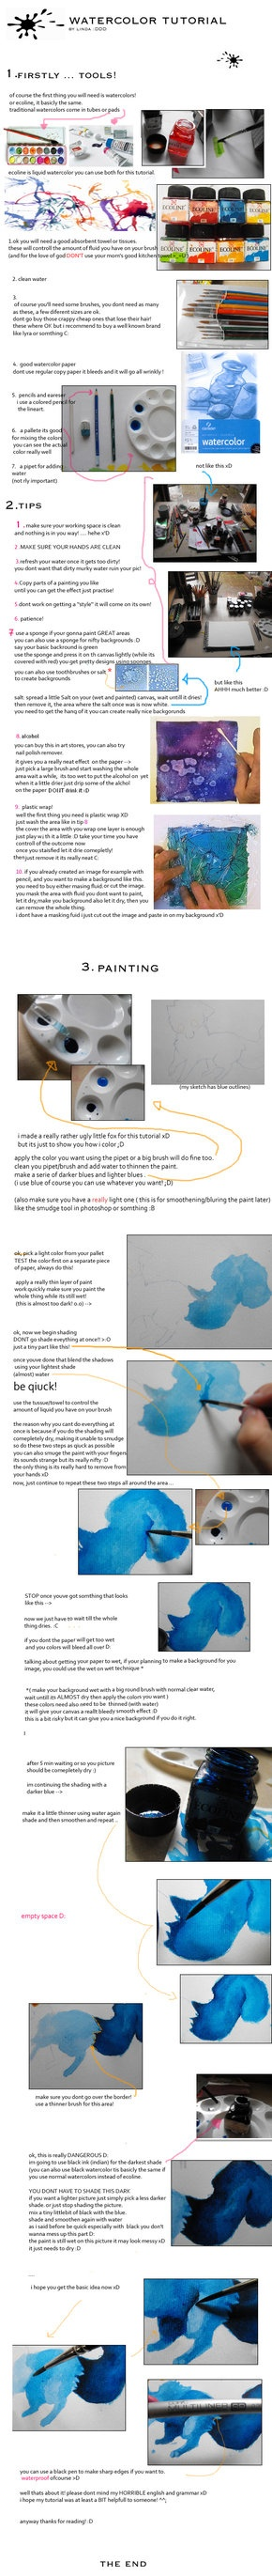 +.watercolor tutorial.+ by ~mysterychao on deviantART